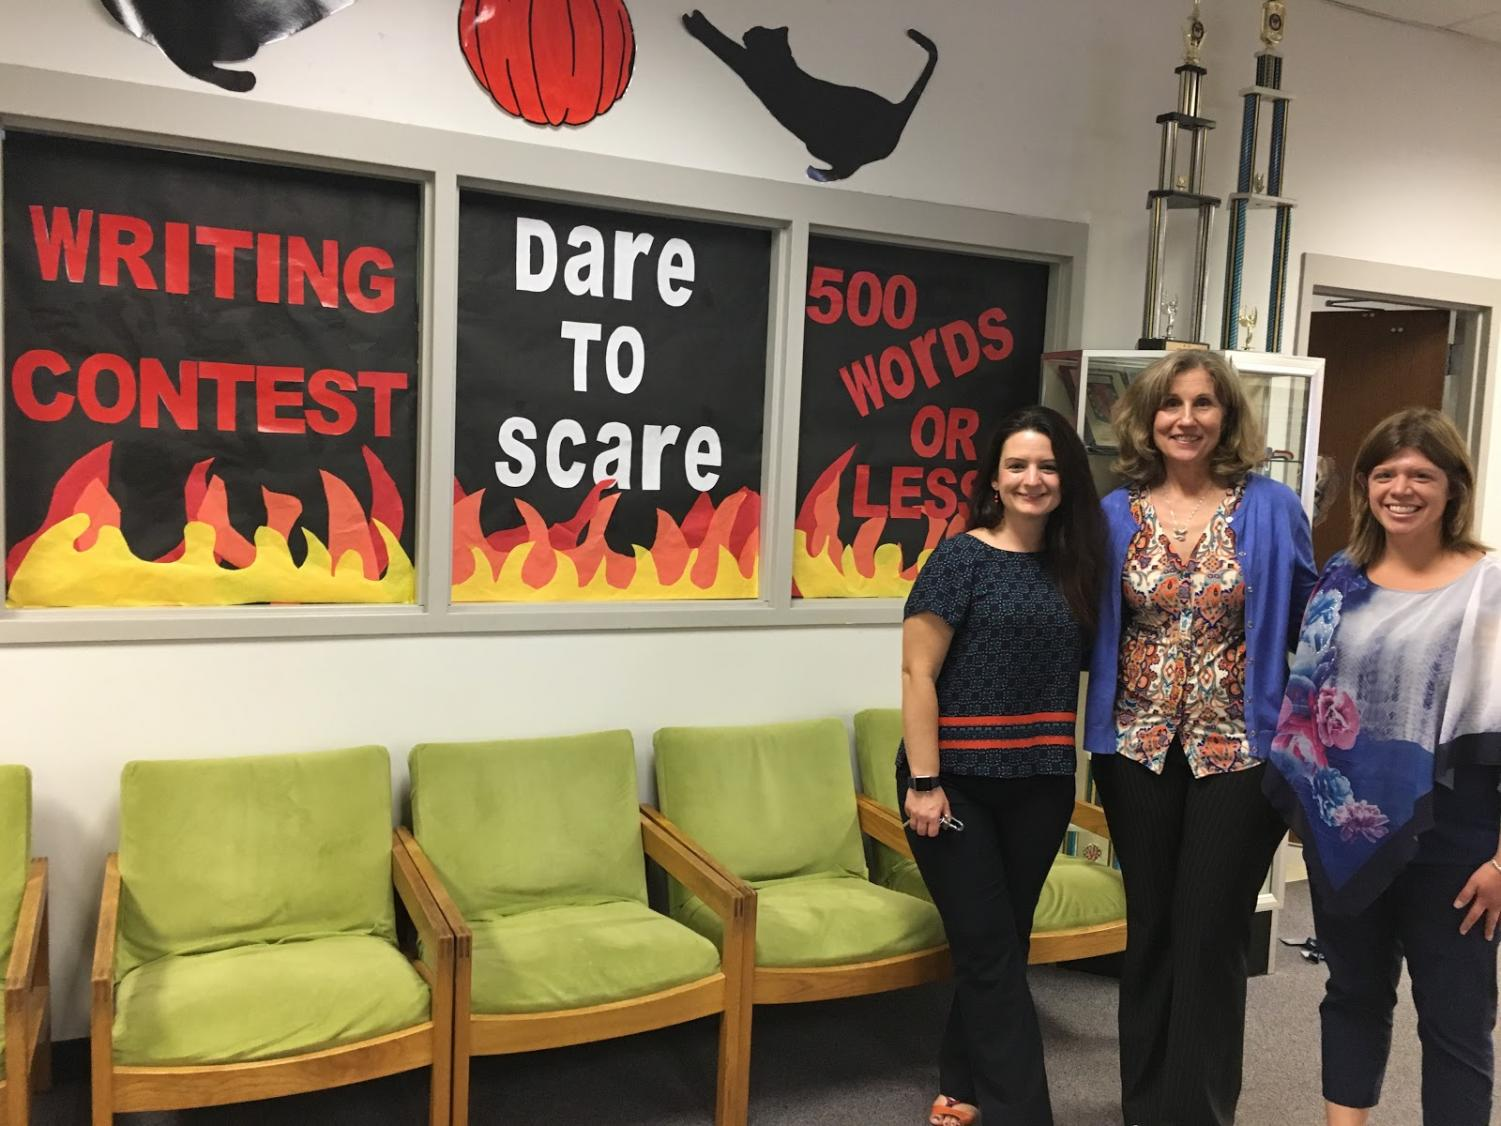 The Dare to Scare contest is now open and students can submit their stories to their English teacher or the LRC. From left, language arts teacher Tara Deleon, library media specialist Donna Leahy, and career and technical education teacher Brittney Bauer will take part in the event.